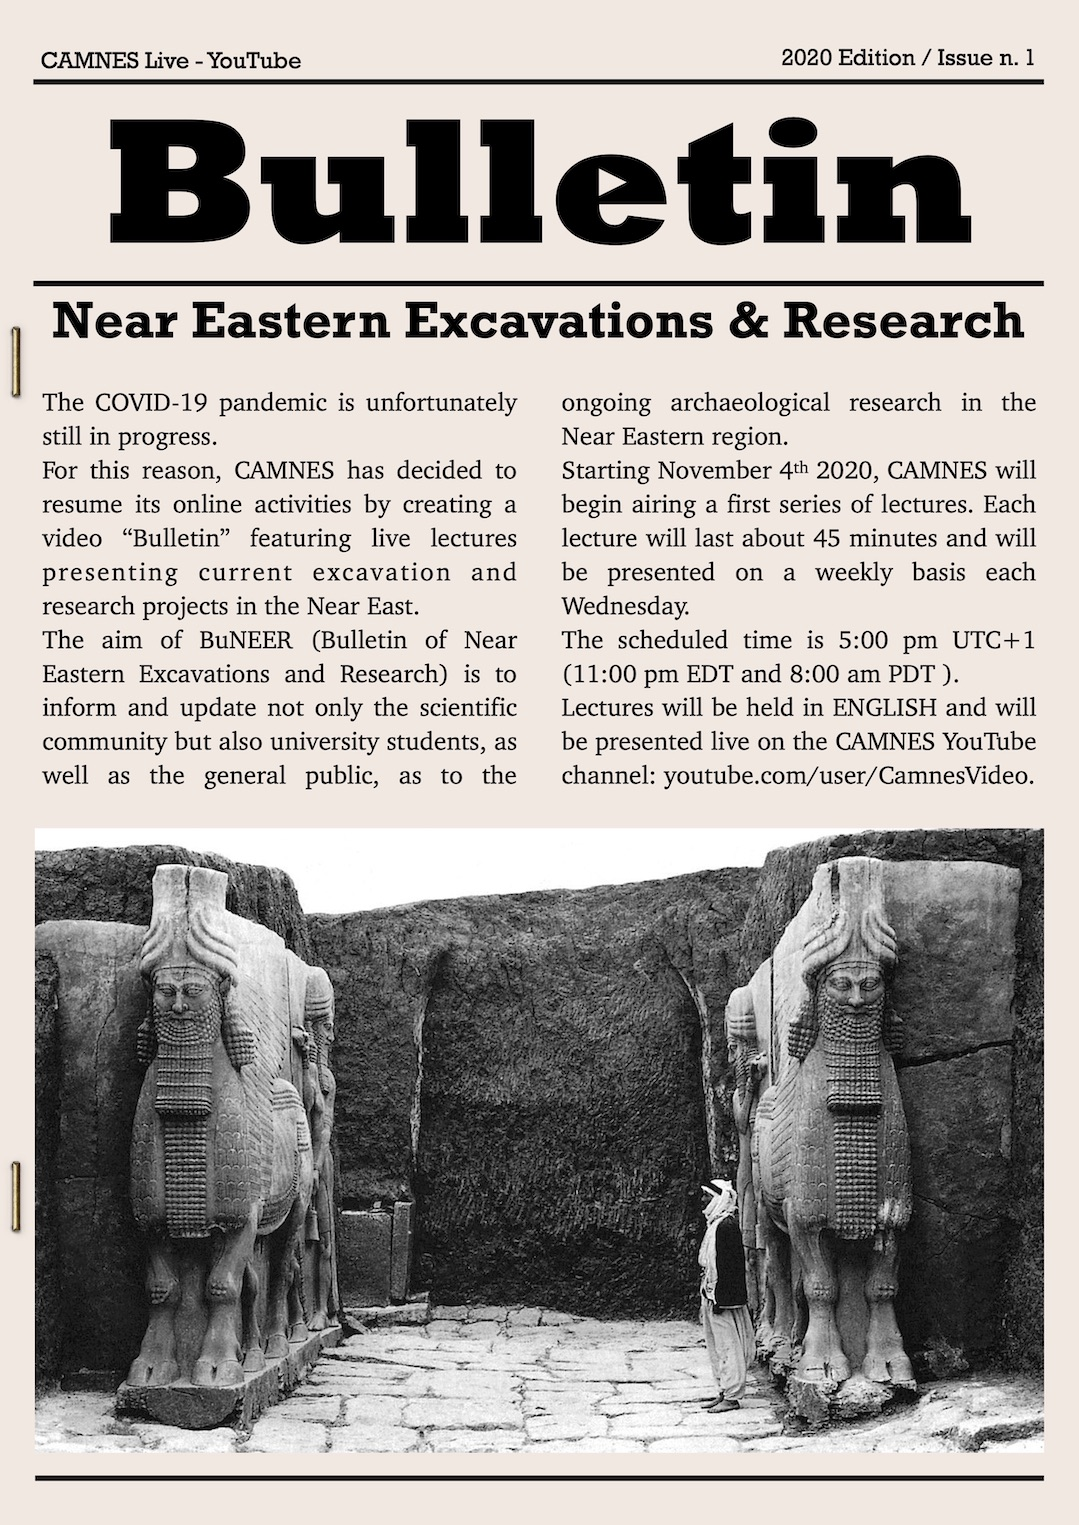 BuNEER: Bulletin of Near Eastern Excavations and Research